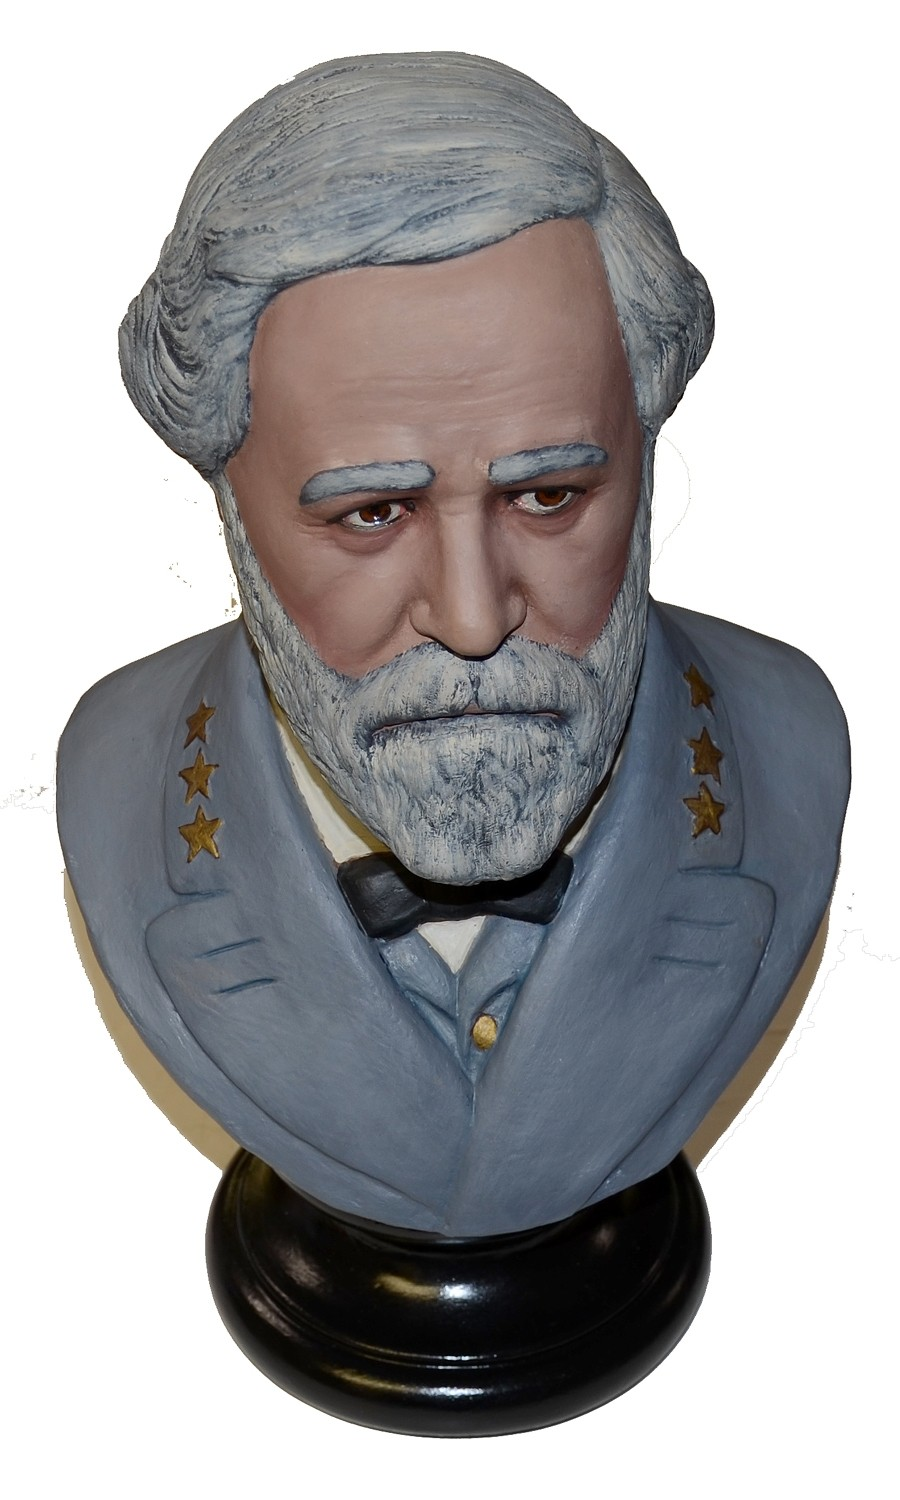 PORTRAIT BUST OF GENERAL R.E. LEE PAINTED BY A LOCAL ARTIST